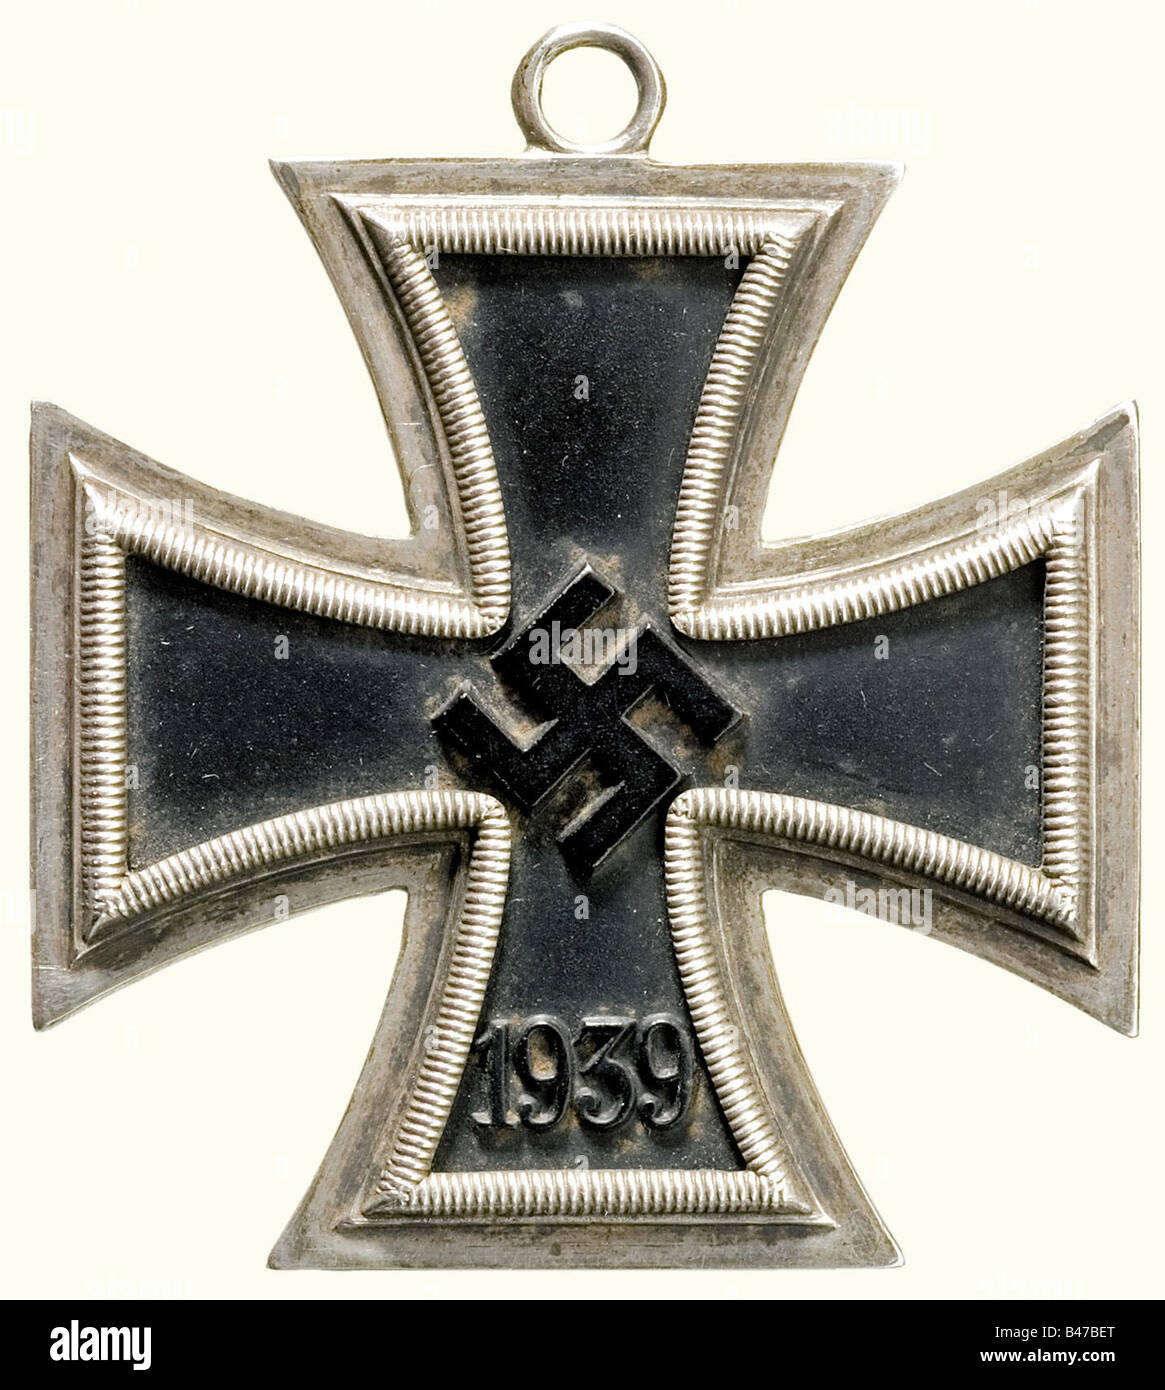 Major general friedrich z a knights cross of the iron cross on major general friedrich z a knights cross of the iron cross on 2 june 1942 as commanding officer 113th infantry division kn biocorpaavc Images